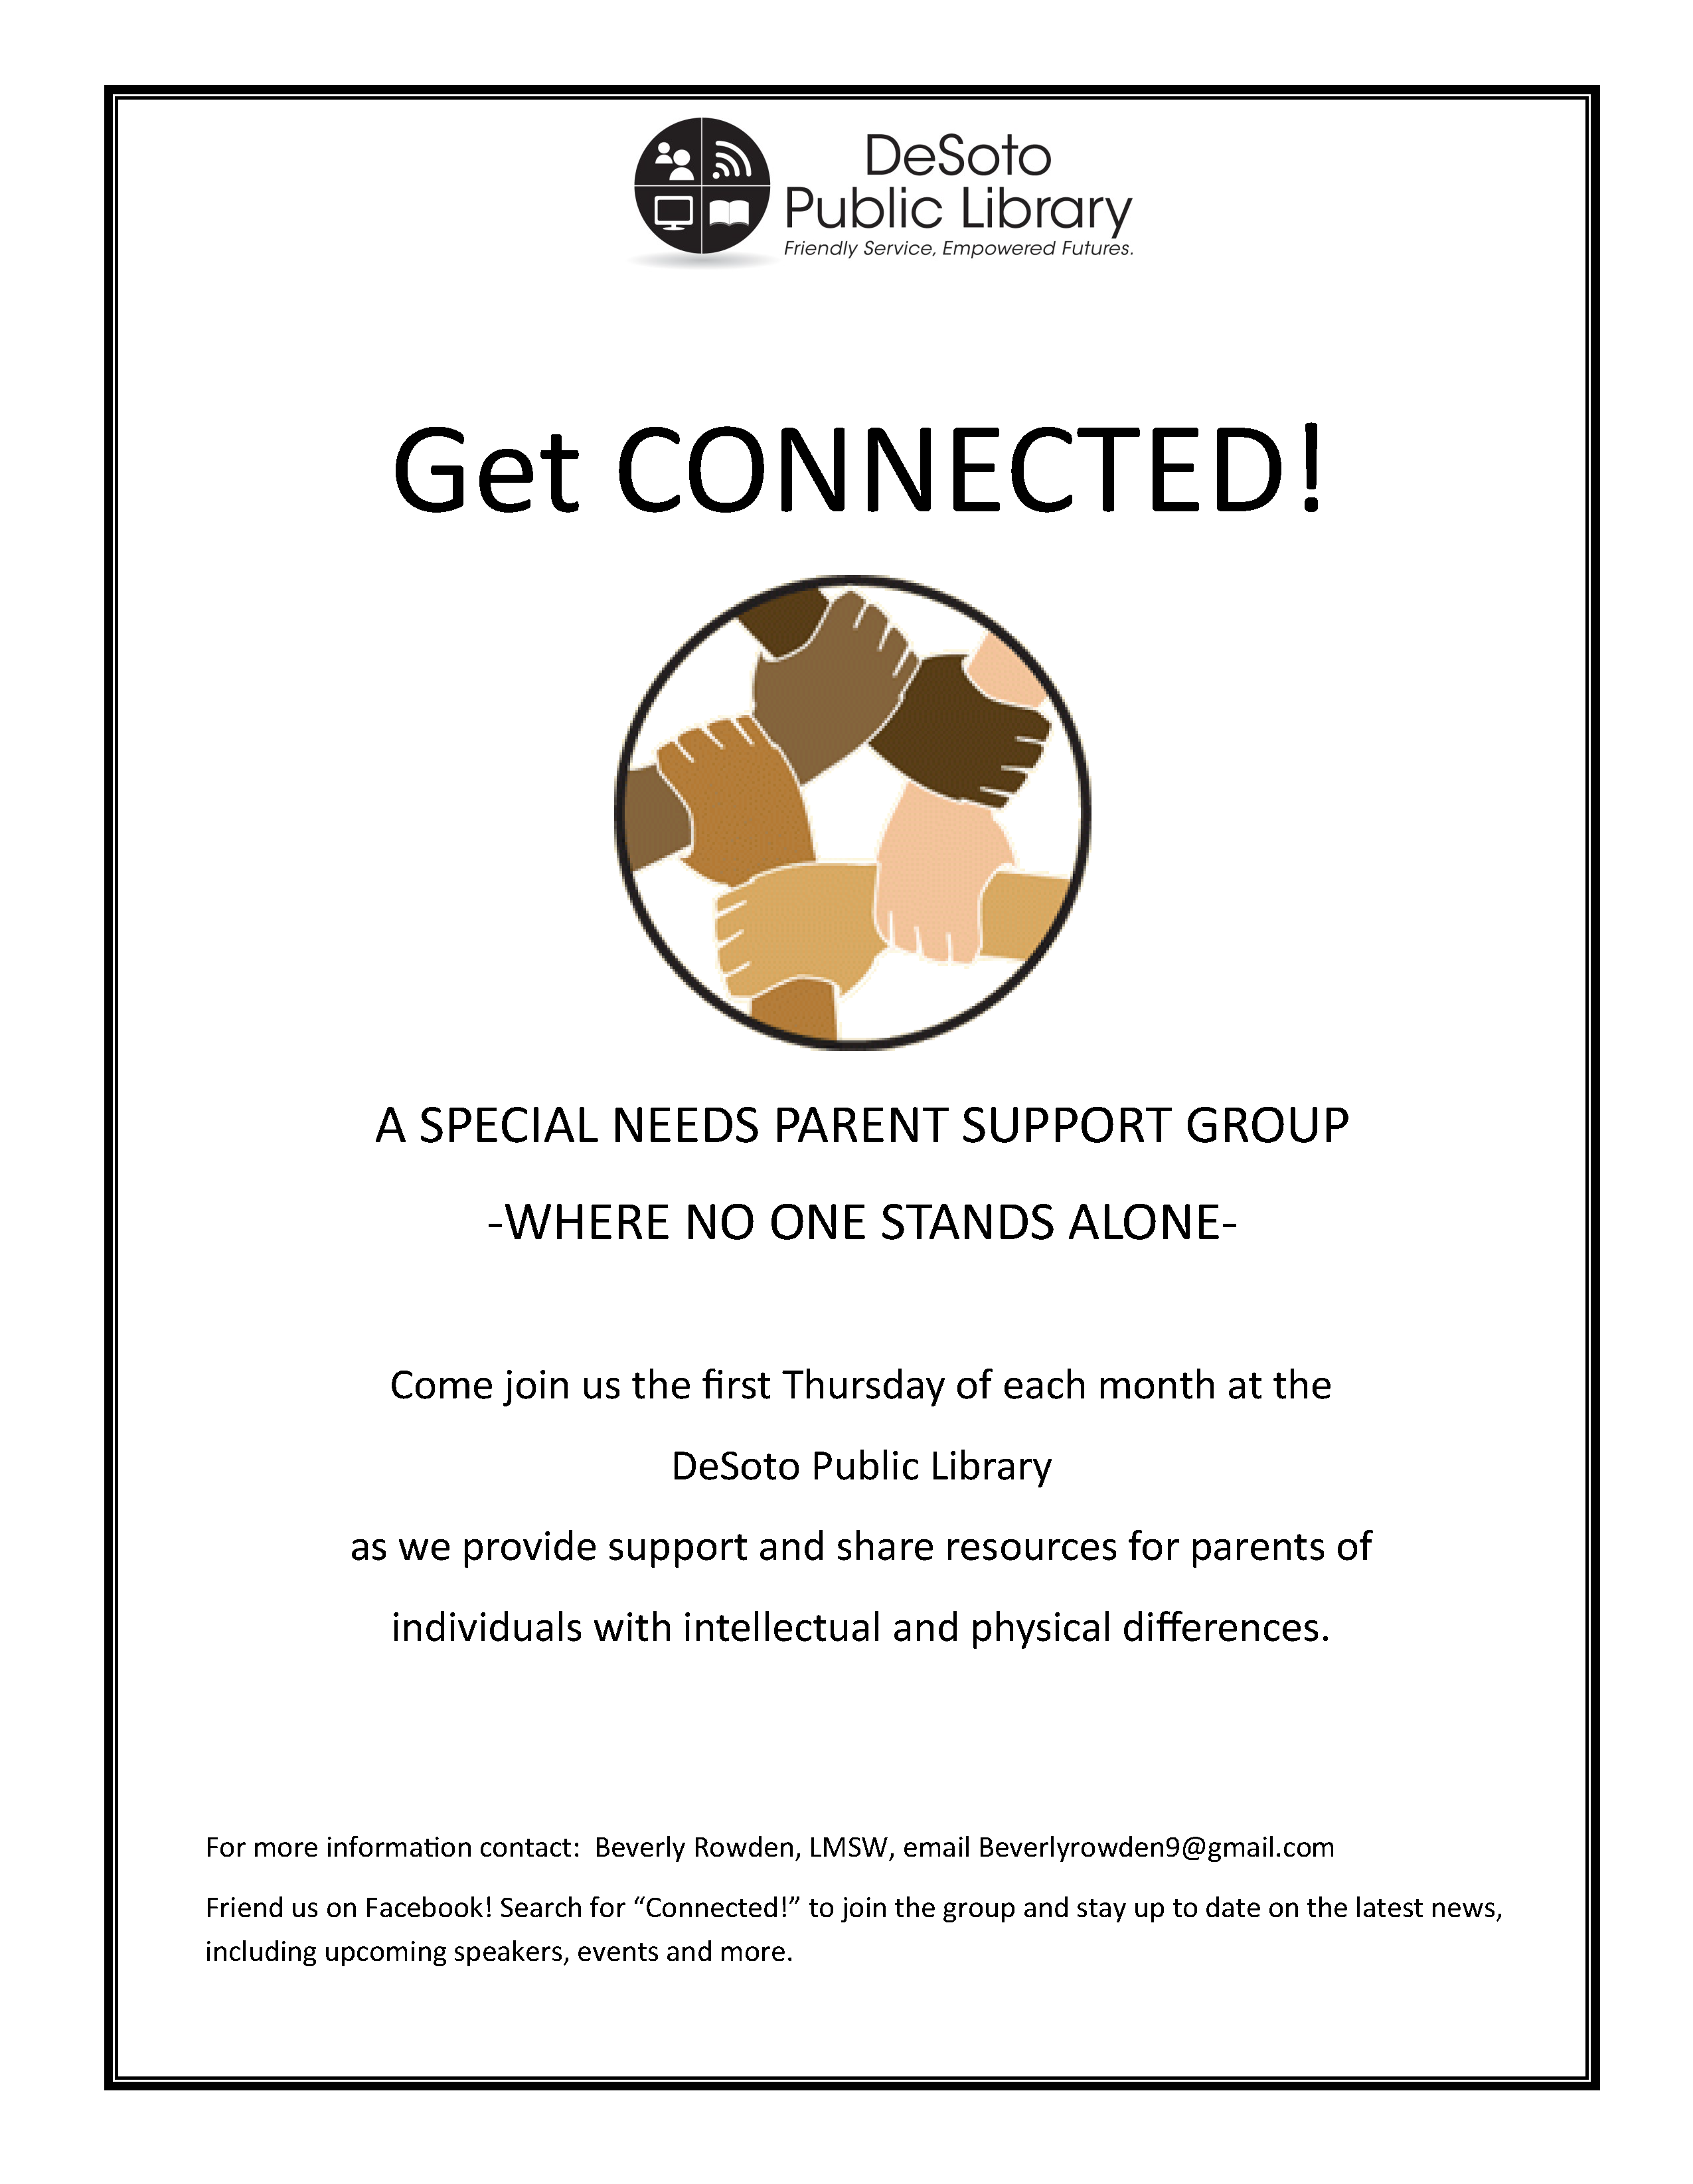 Get Connected! Special Needs Parent Support Group flyer